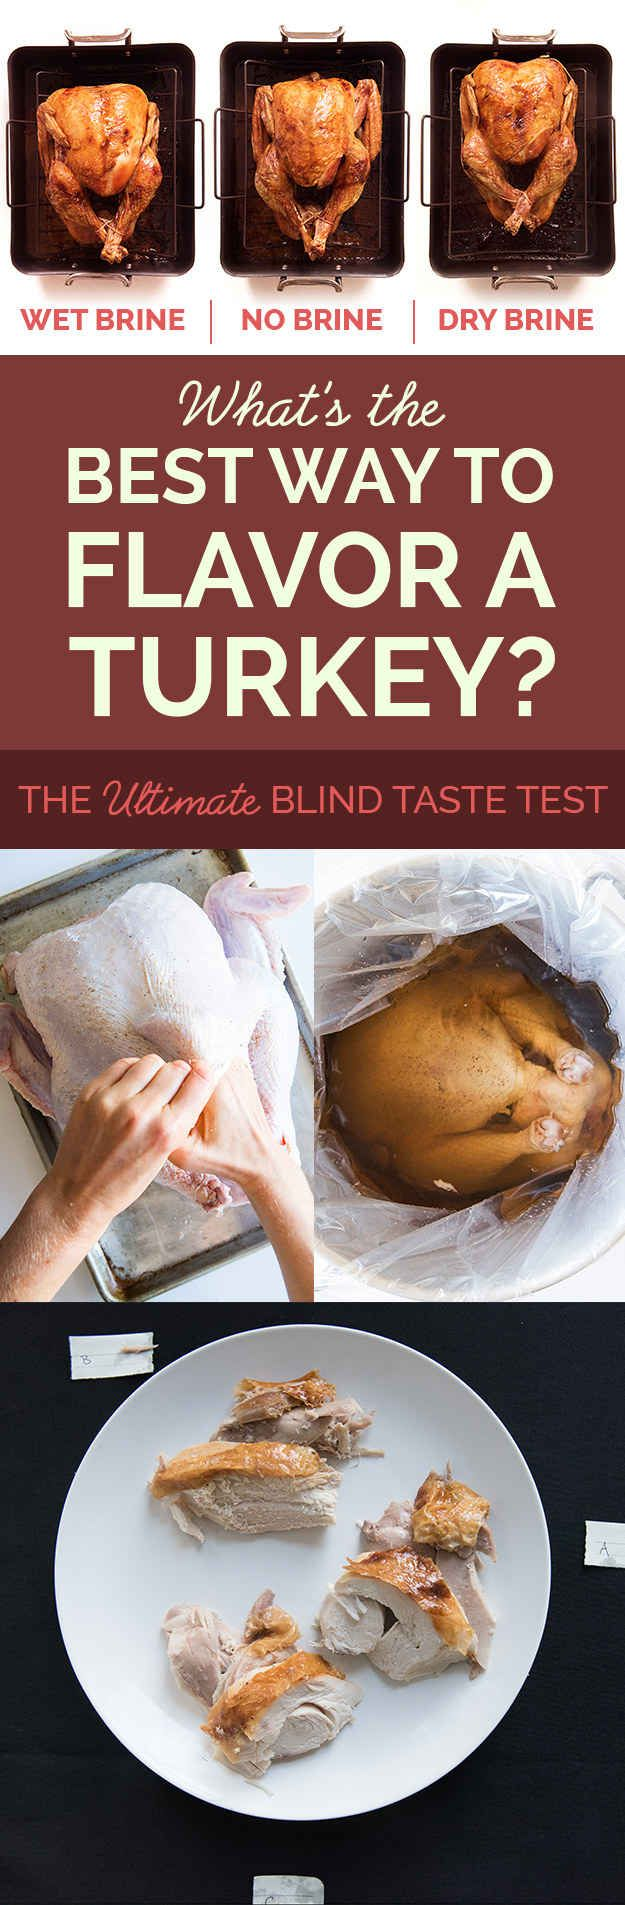 Here's Proof That Brining Your Turkey Is Stupid And Wrong